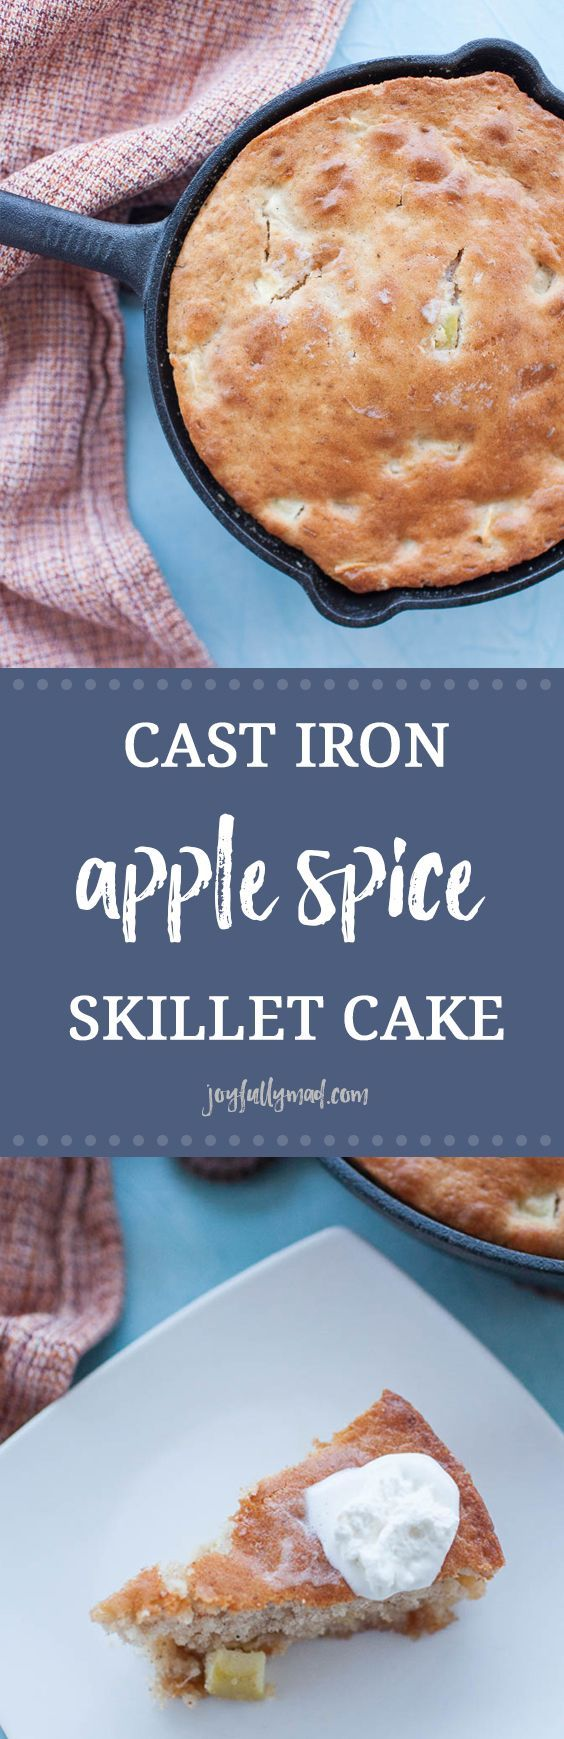 Cast Iron Apple Skillet Cake is the perfect fall dessert! It's quick and easy to make, needing only five ingredients, including a box of cake mix. This cake is baked in a cast iron skillet for an extra rustic touch and fun way to serve your dessert.  via @joyfullymad